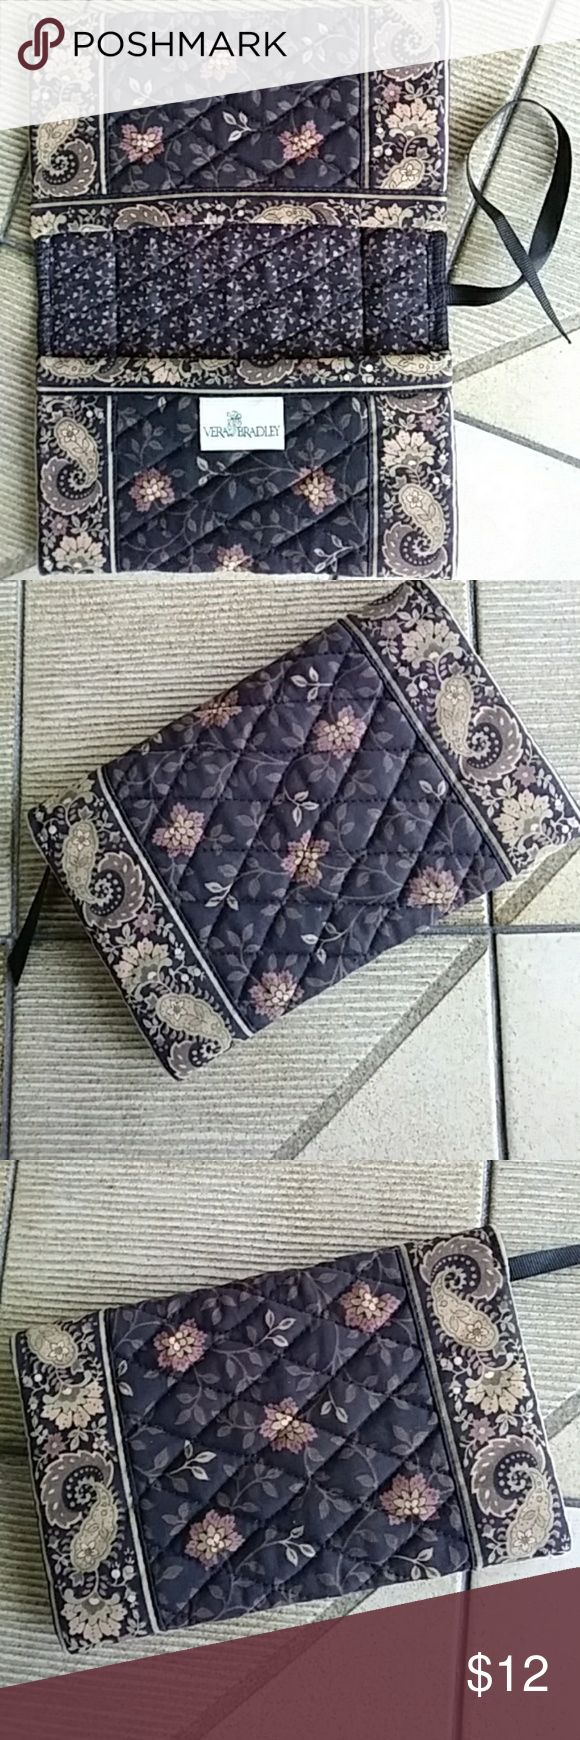 """Just in! VERA BRADLEY Quilted Checkbook VERA BRADLEY Checkbook Holder. Also ideal as a small notebook, planner or  journal cover. Quilted in lovely leaf and floral patterned cotton. Perfect fall and winter colors. Pockets either side and black ribbon page marker. Preloved, EUC. Black, brown, dusty rose, tan, green. Approx folded measure: 7.5"""" x 5"""" x 1"""" Vera Bradley Accessories"""